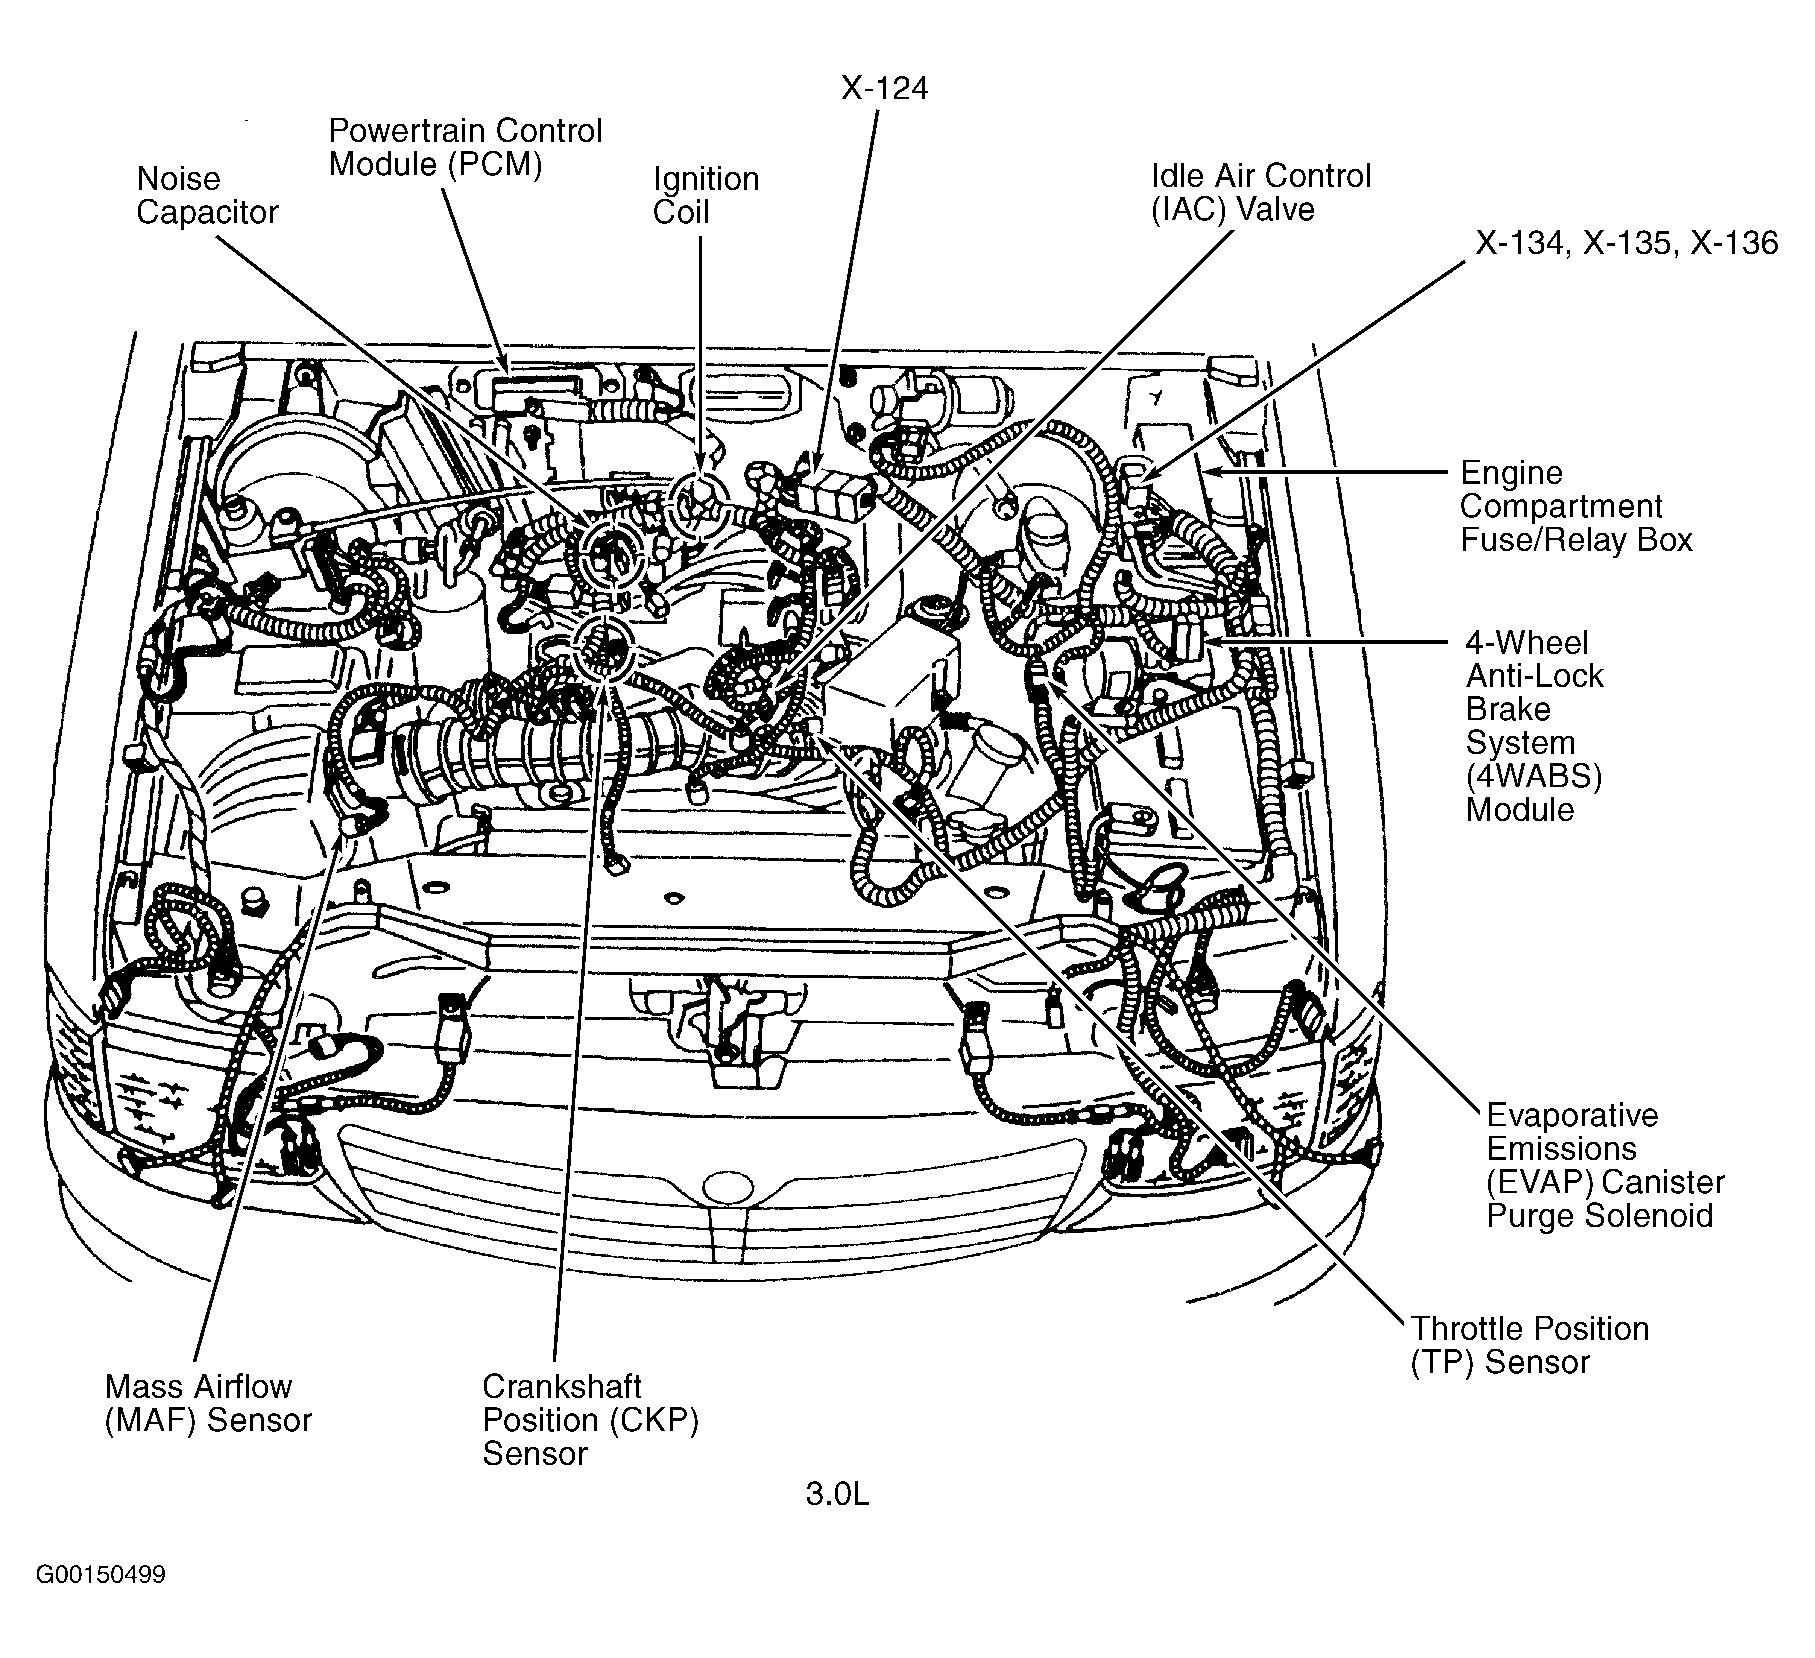 2008 Mazda 3 Engine Diagram Diagram Mazda 6 Engine Diagram – My